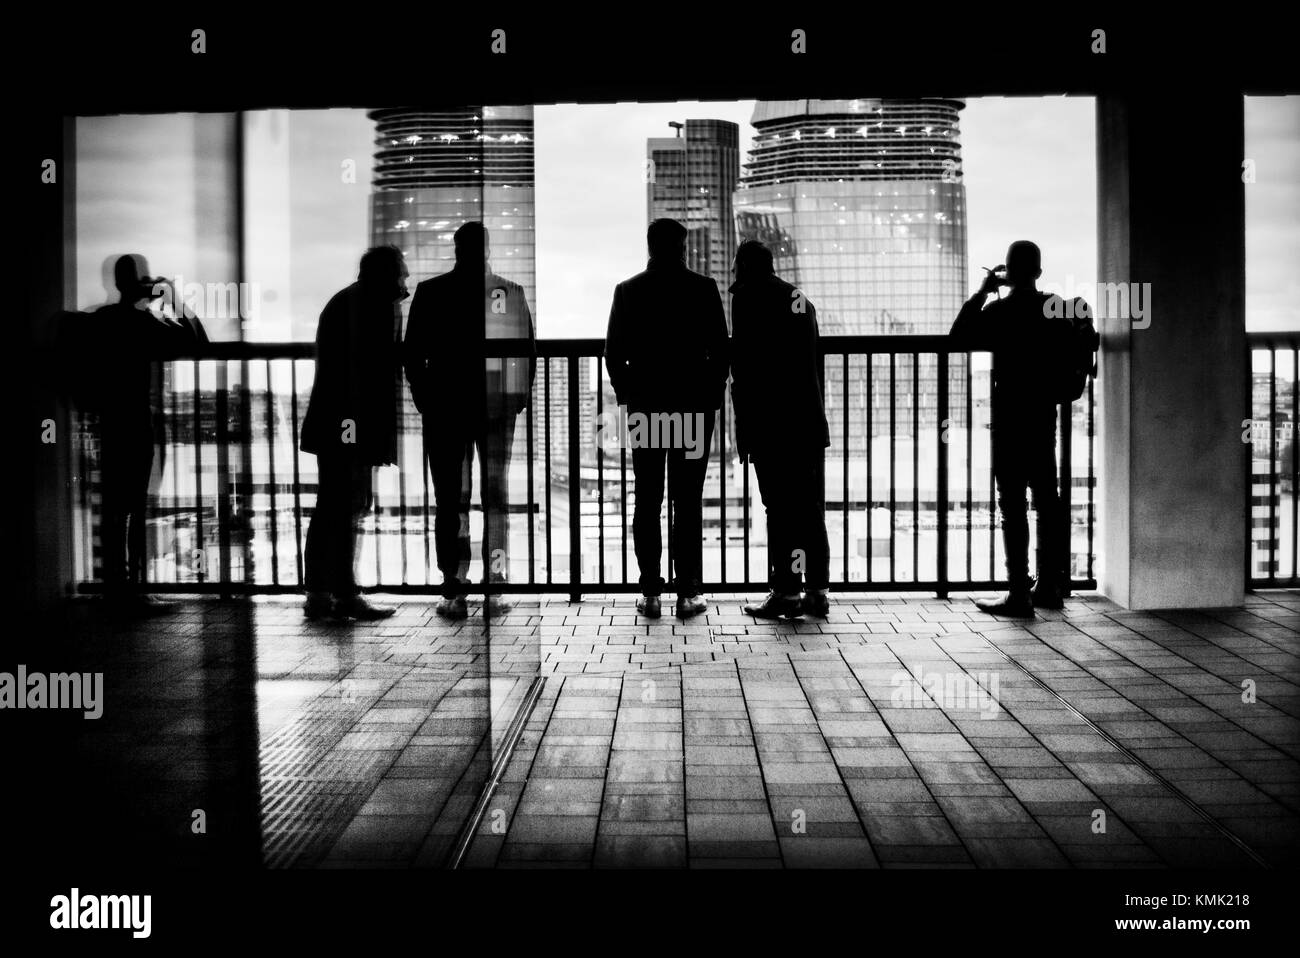 Silhouette of unrecognizable three man and reflected on a glass looking at the City from a balcony. Tate Modern, The City, Bankside, London, UK Stock Photo